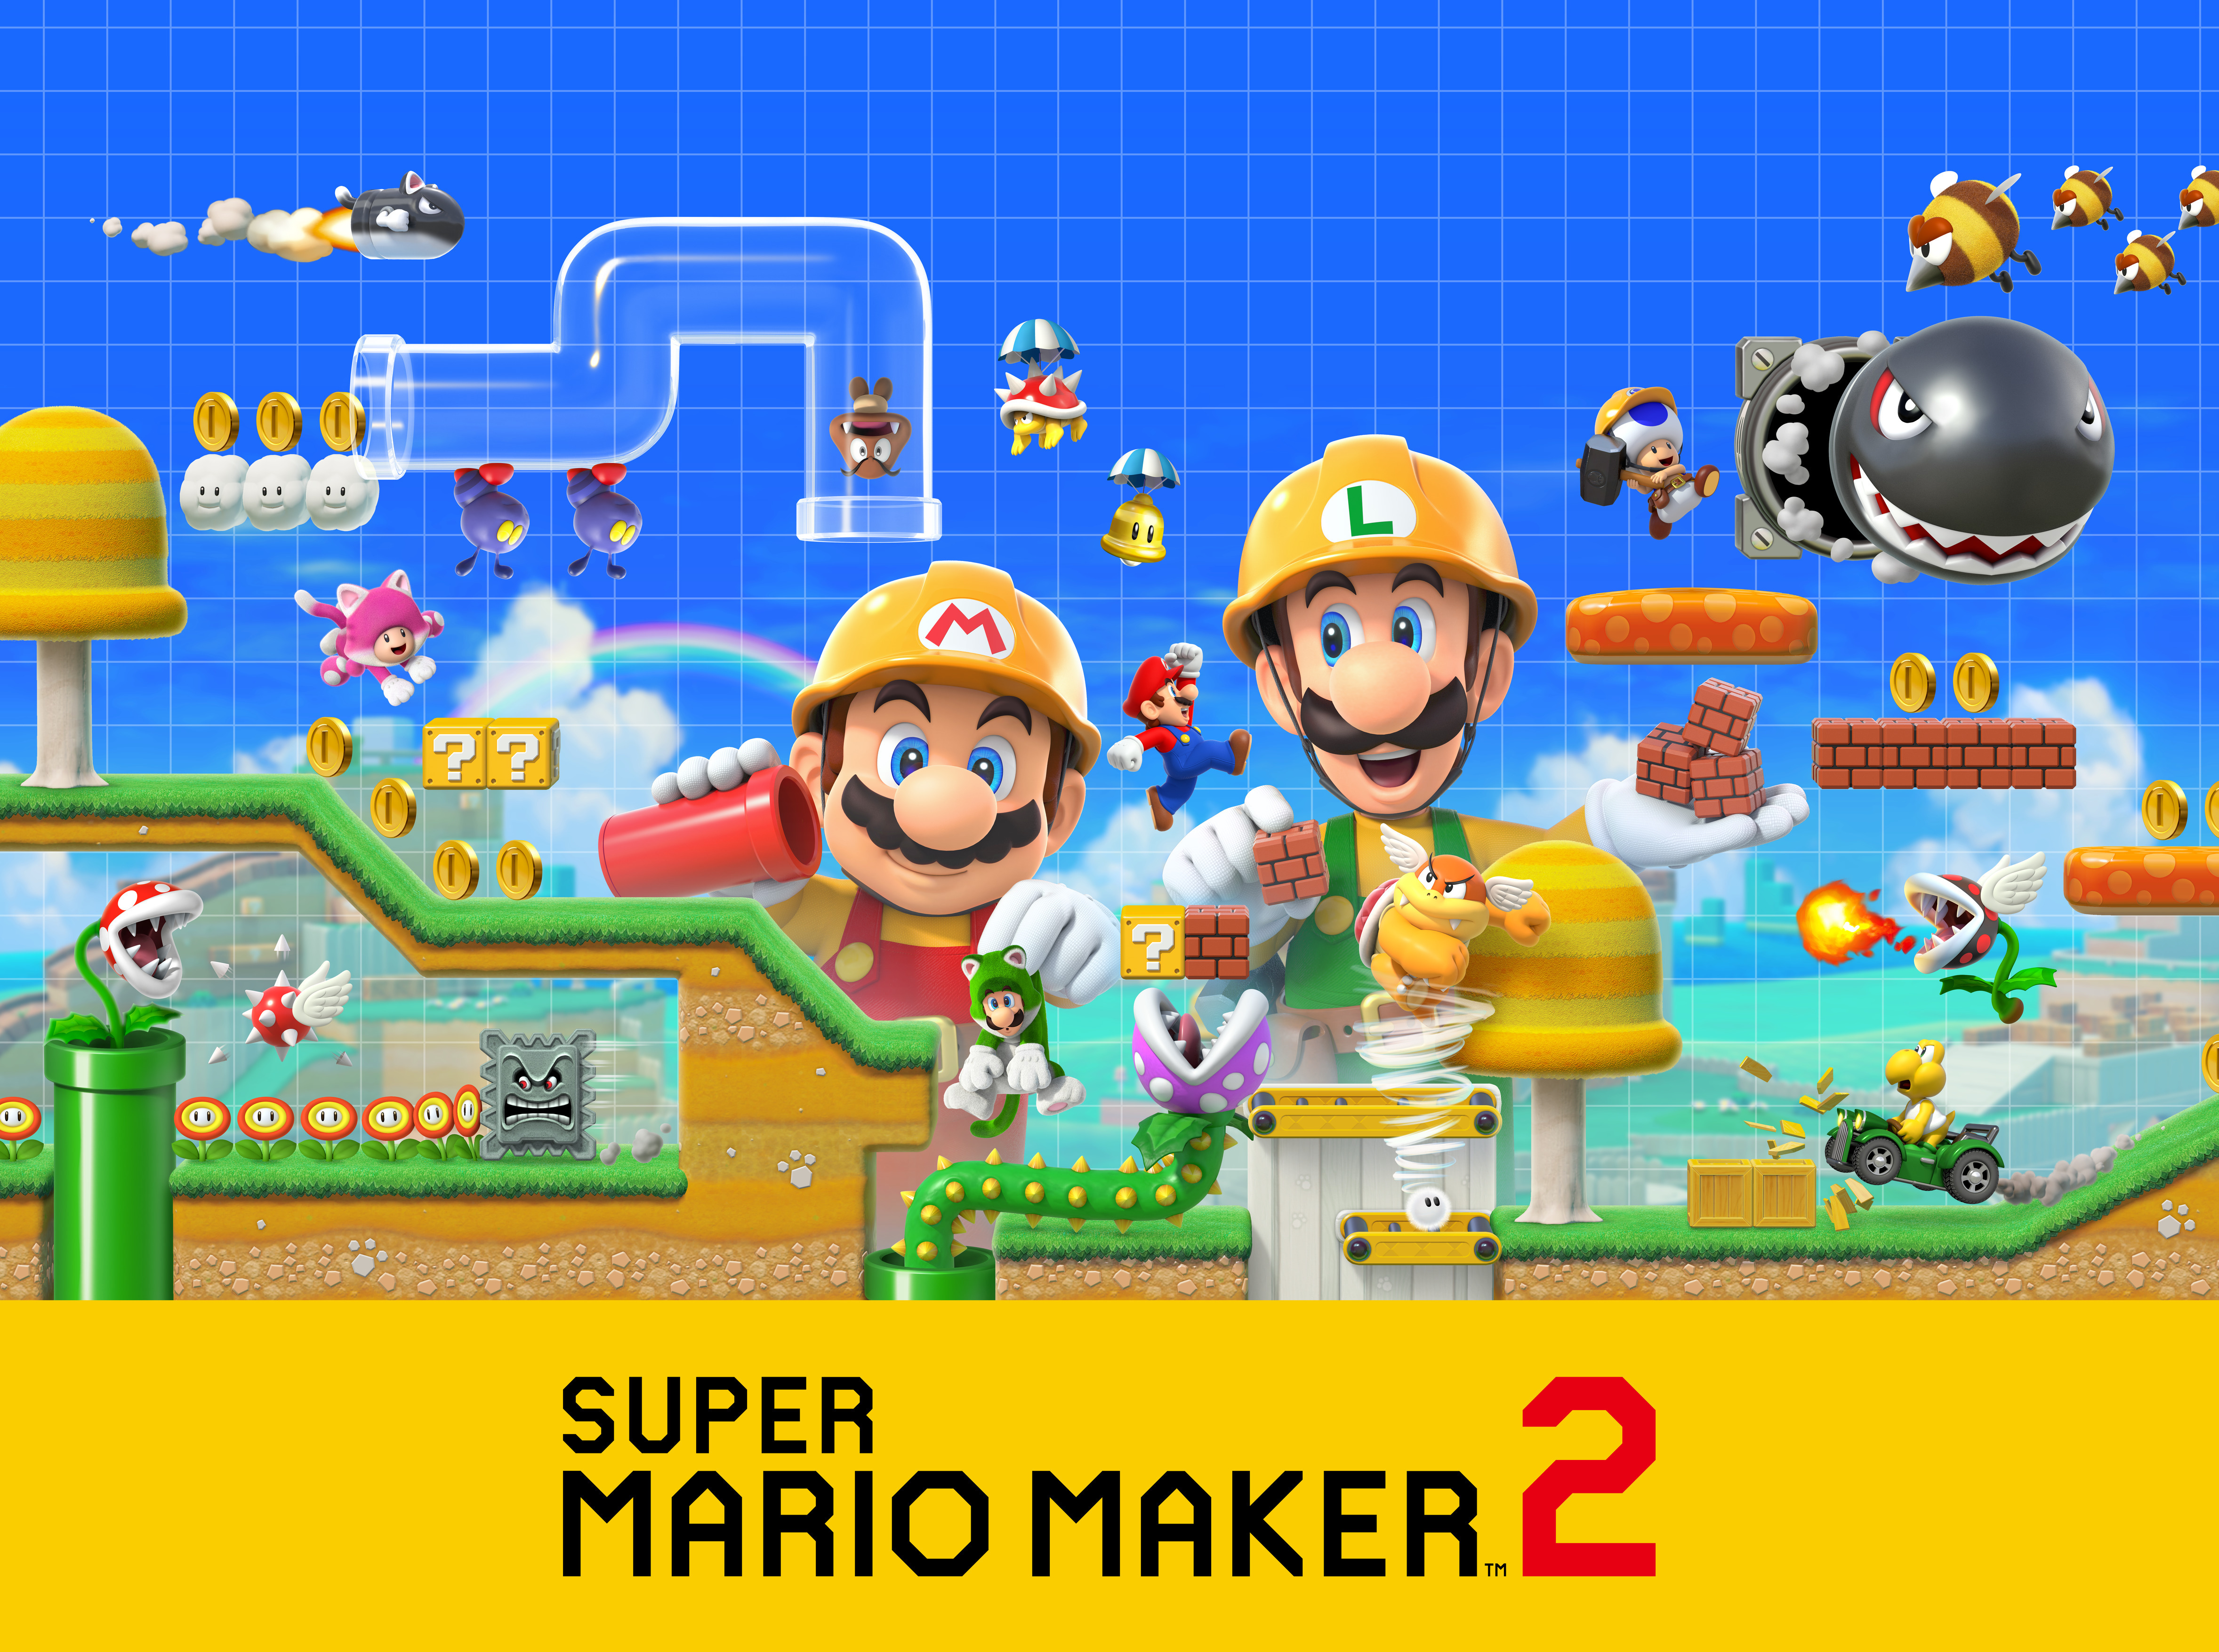 New Super Mario Maker 2 Details Revealed In Latest Nintendo Direct